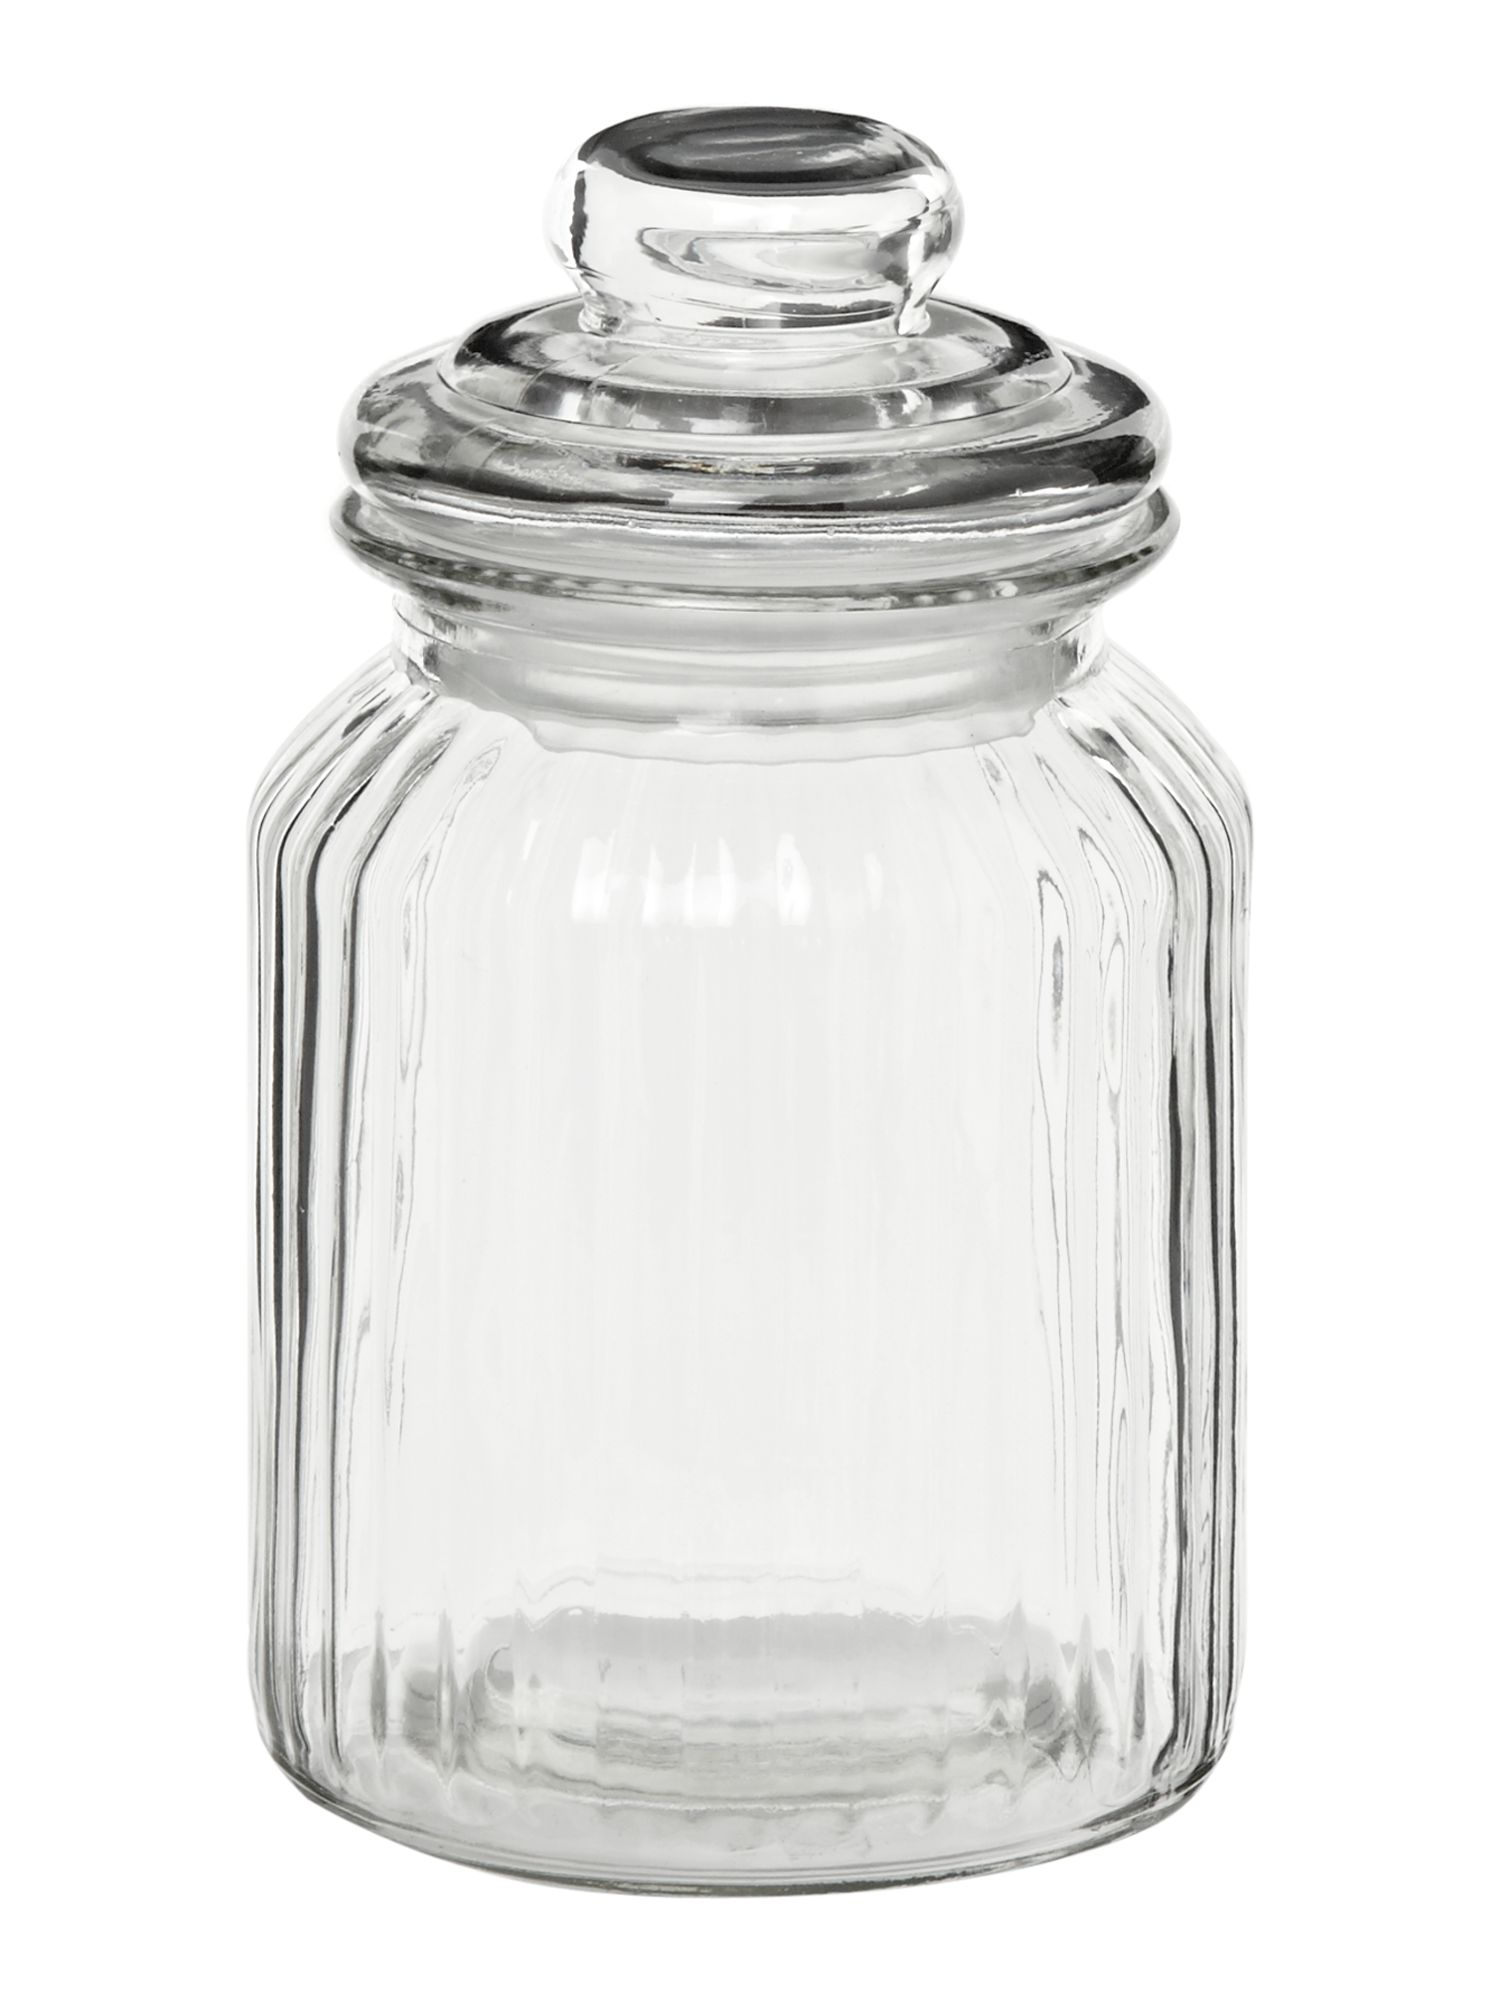 Glass sweetie jar, medium